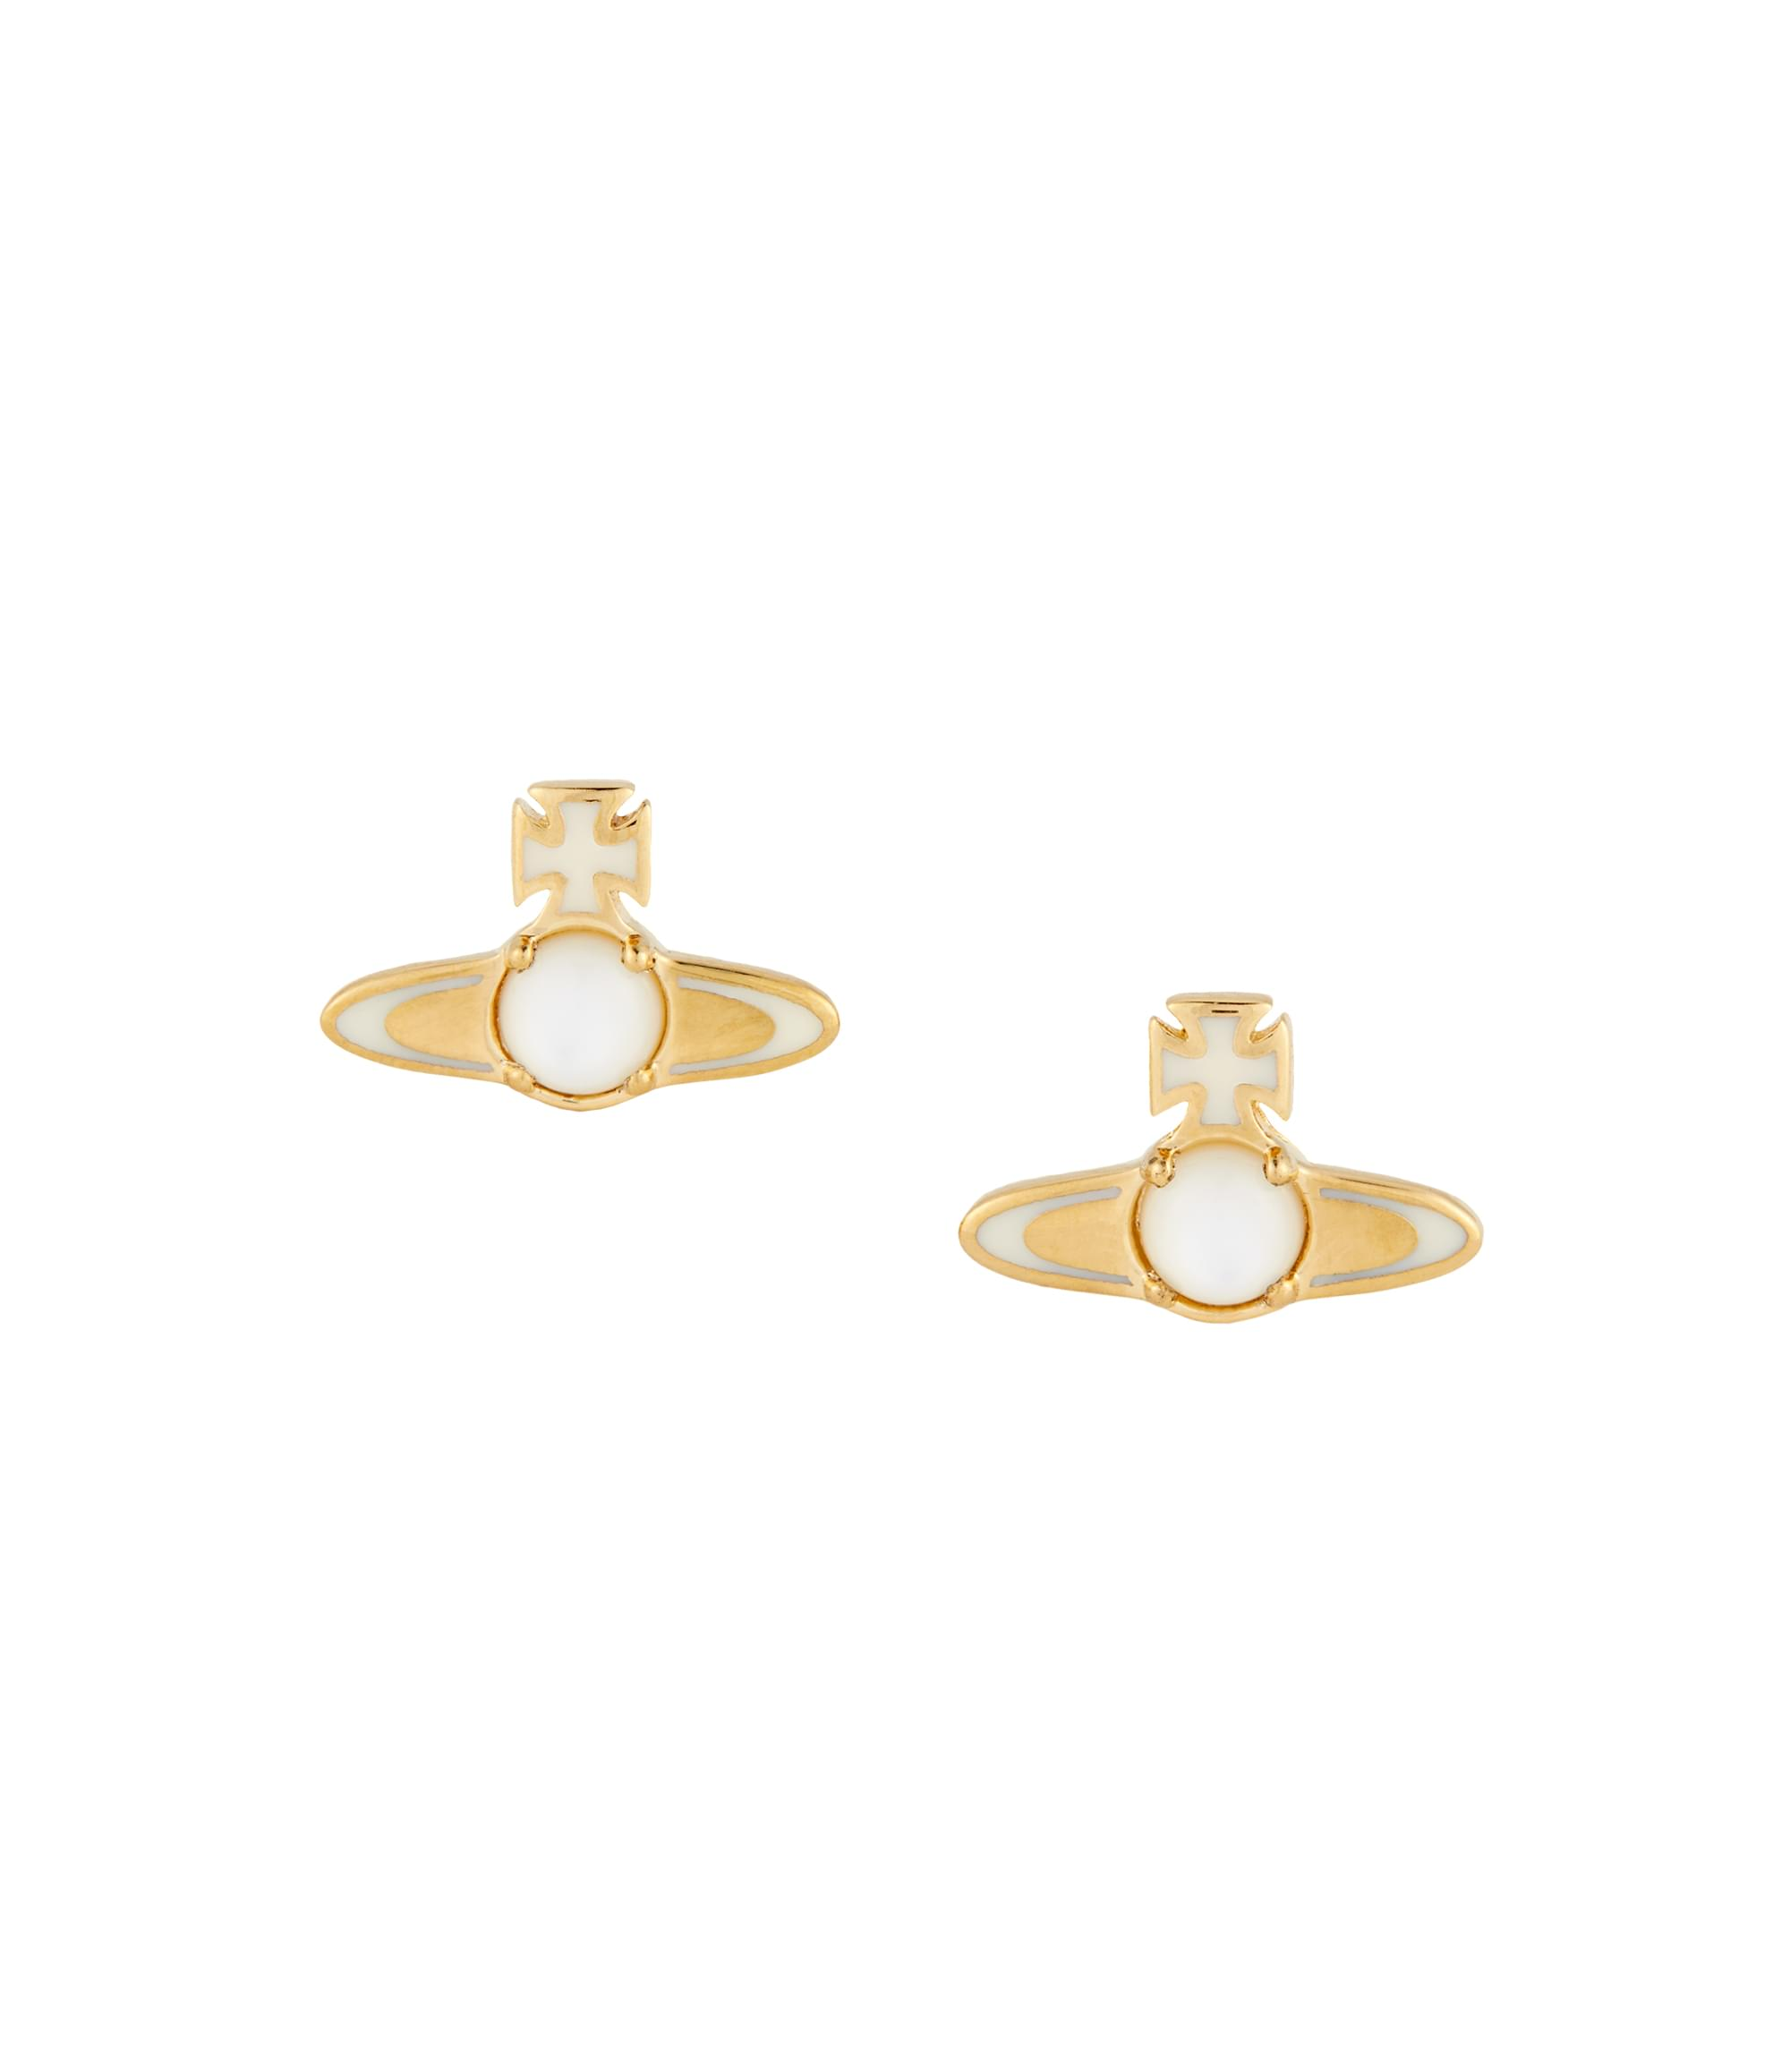 Vivienne Westwood Yellow Gold Betsy Earrings